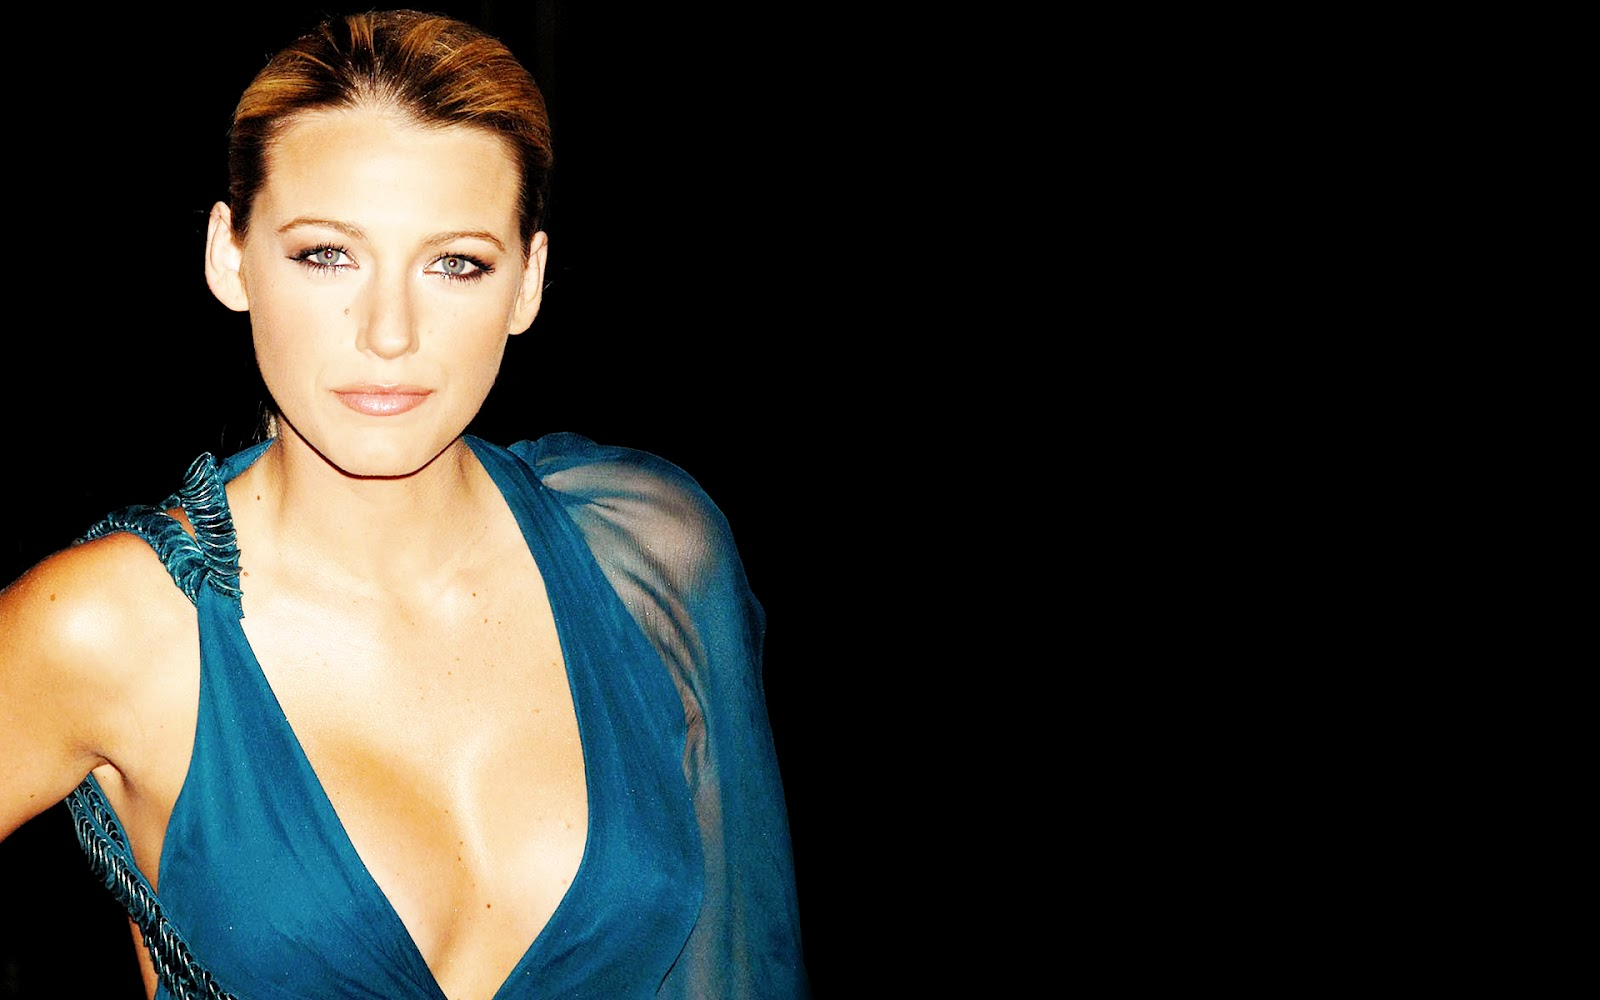 ... wallpapers and pictures of Blake Lively Hot Wallpapers as often as